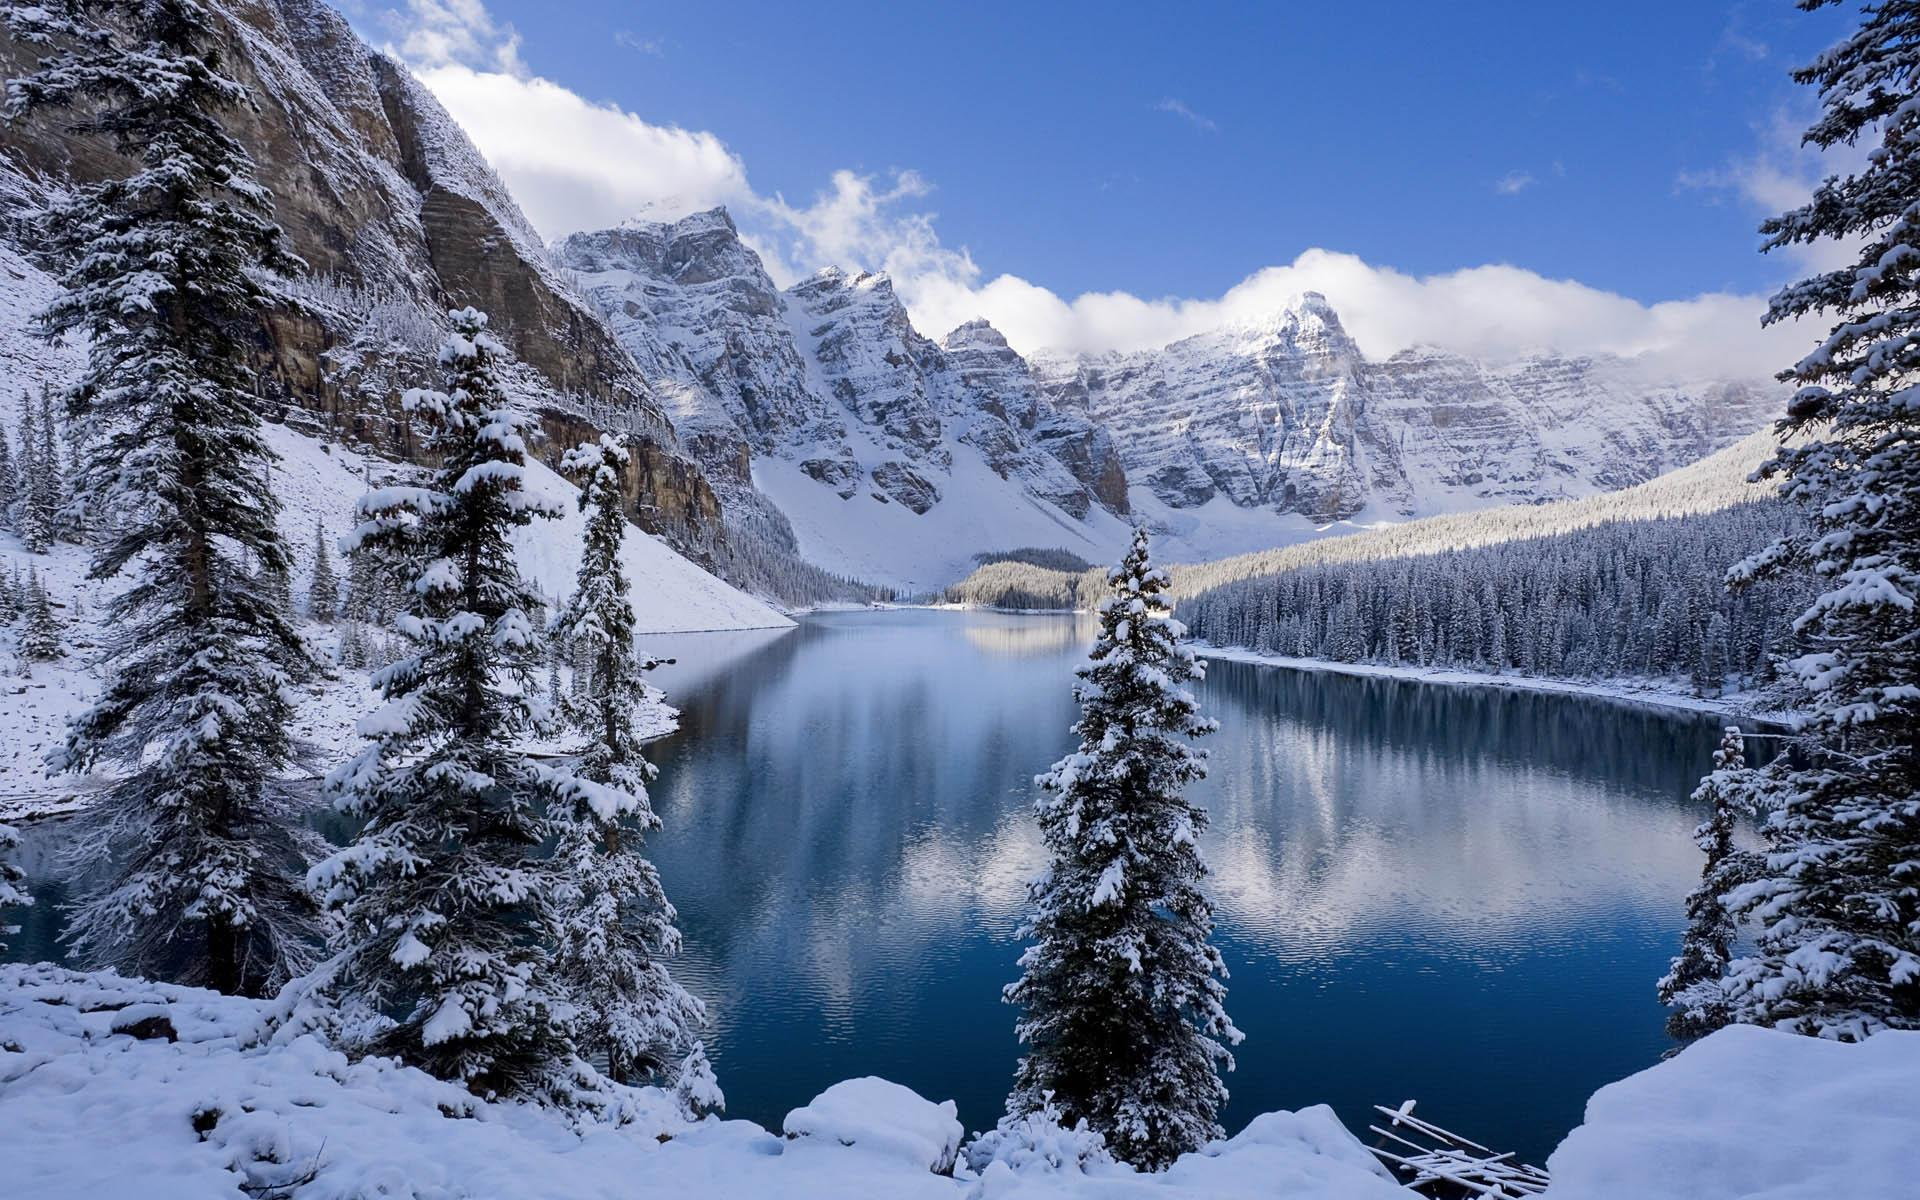 winter wallpapers background stunning wallpaper freebies images 1920x1200